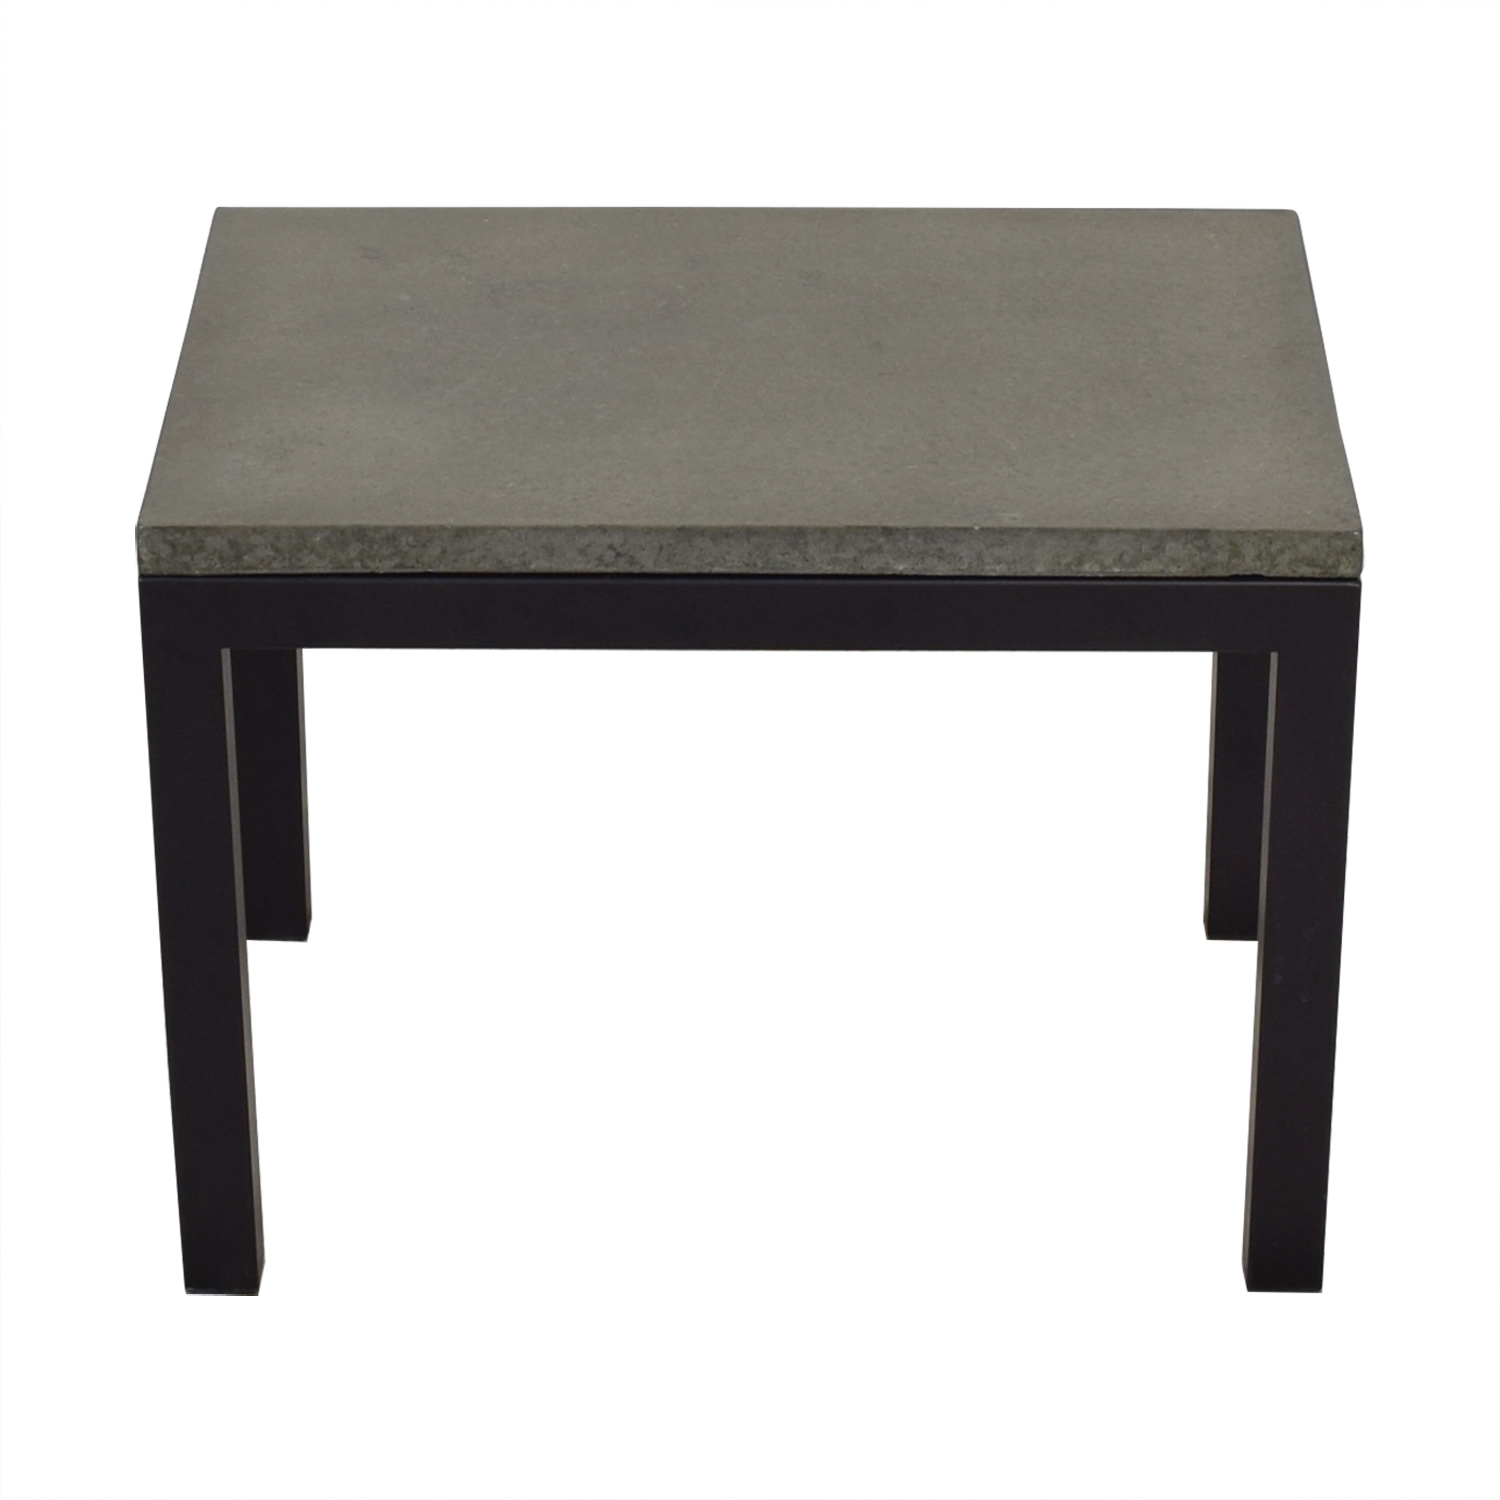 Room & Board Room & Board Parsons Concrete End Table black and dark grey